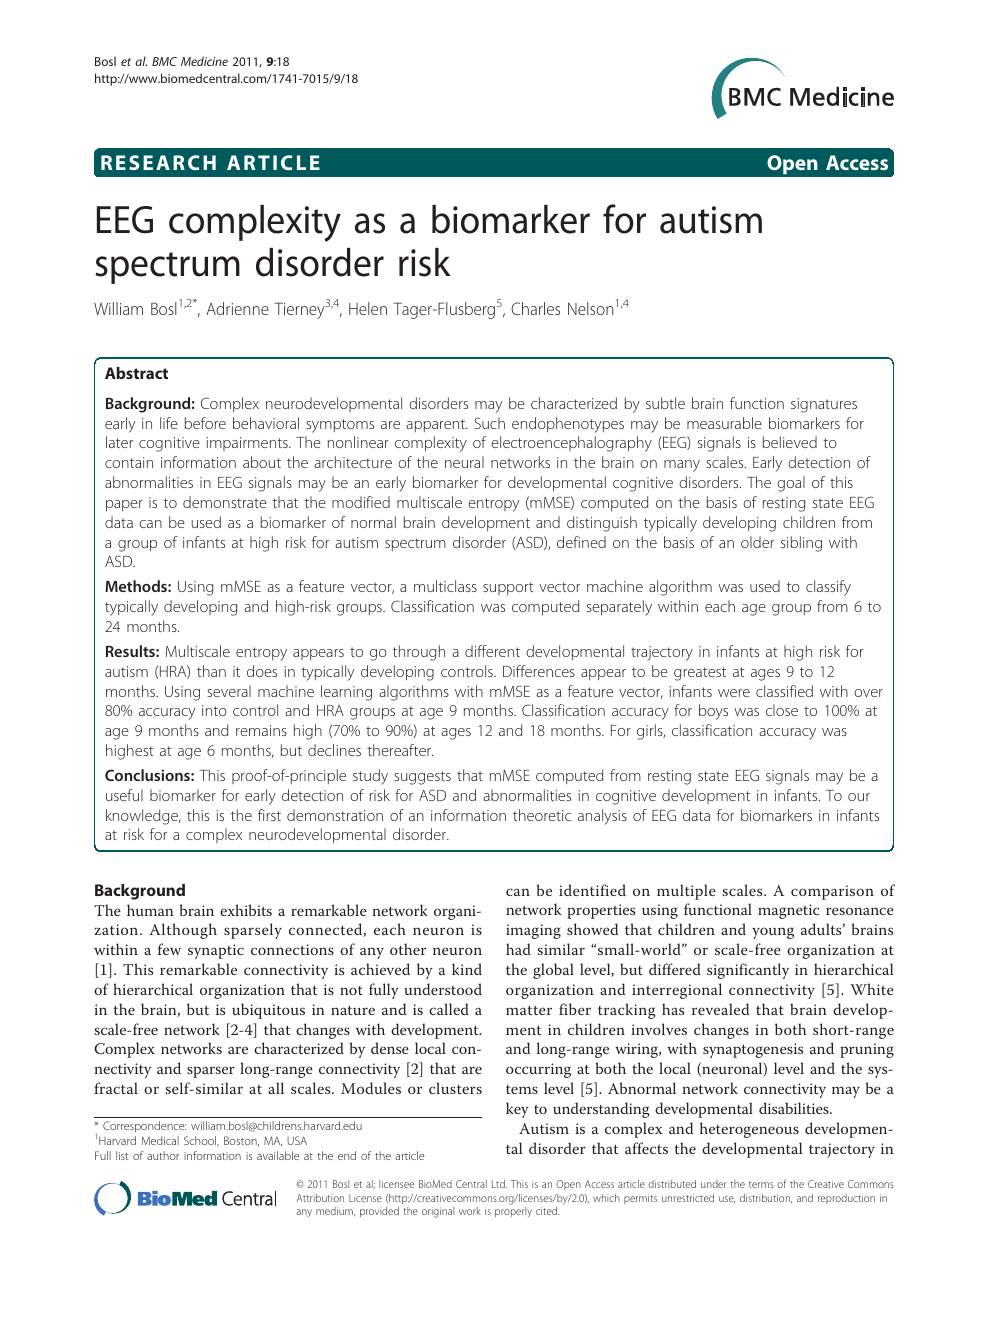 Eeg Signals Accurately Predict Autism >> Eeg Complexity As A Biomarker For Autism Spectrum Disorder